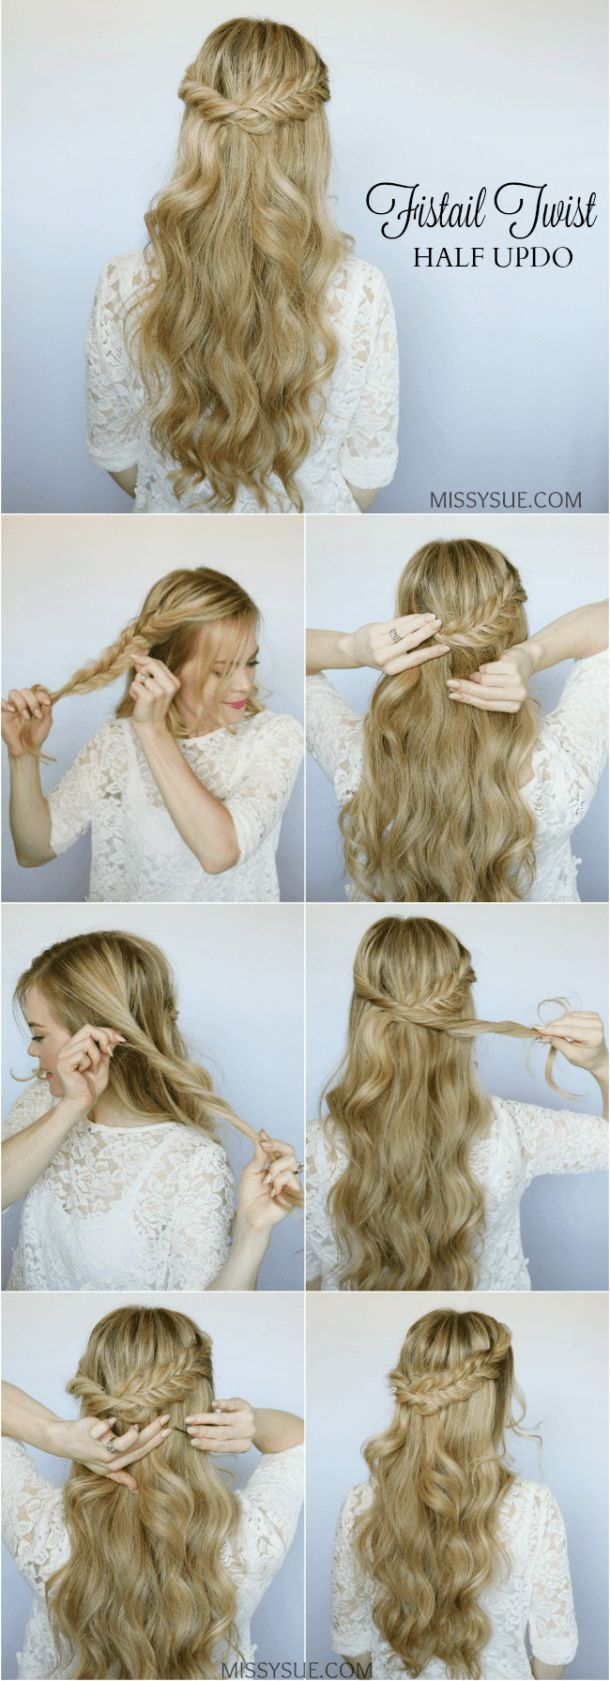 Fishtail Braid Twist Half Updo Tutorial … – #Braid #fishtail #Tutorial #Twist …